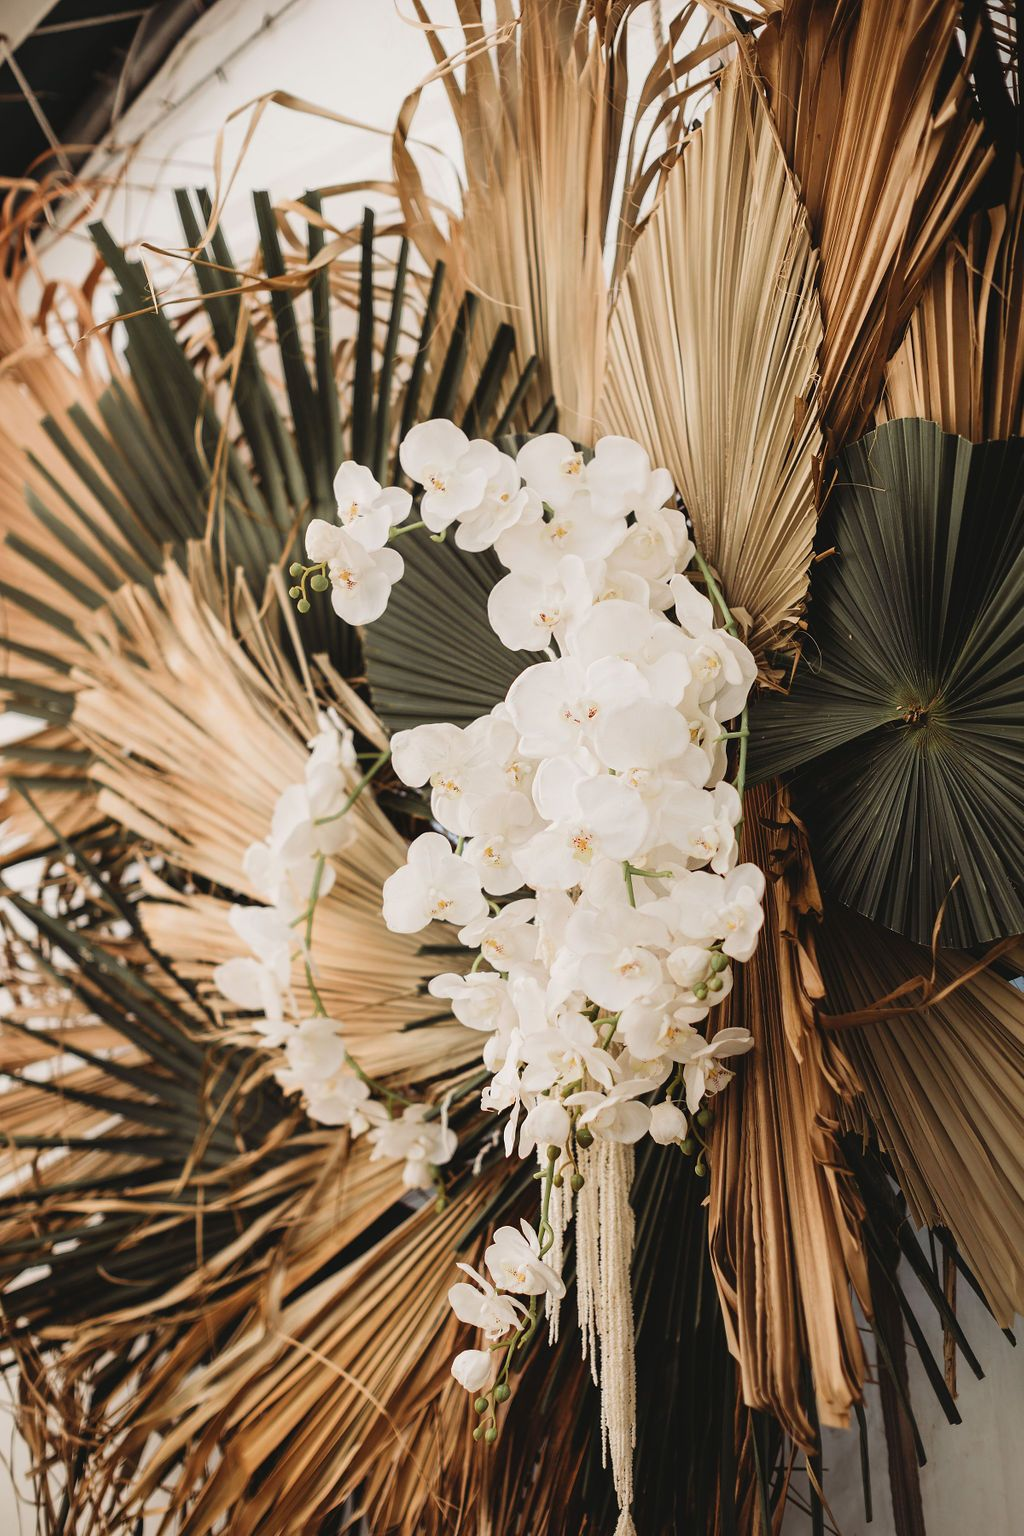 Dried florals sydney wedding photographer the paper